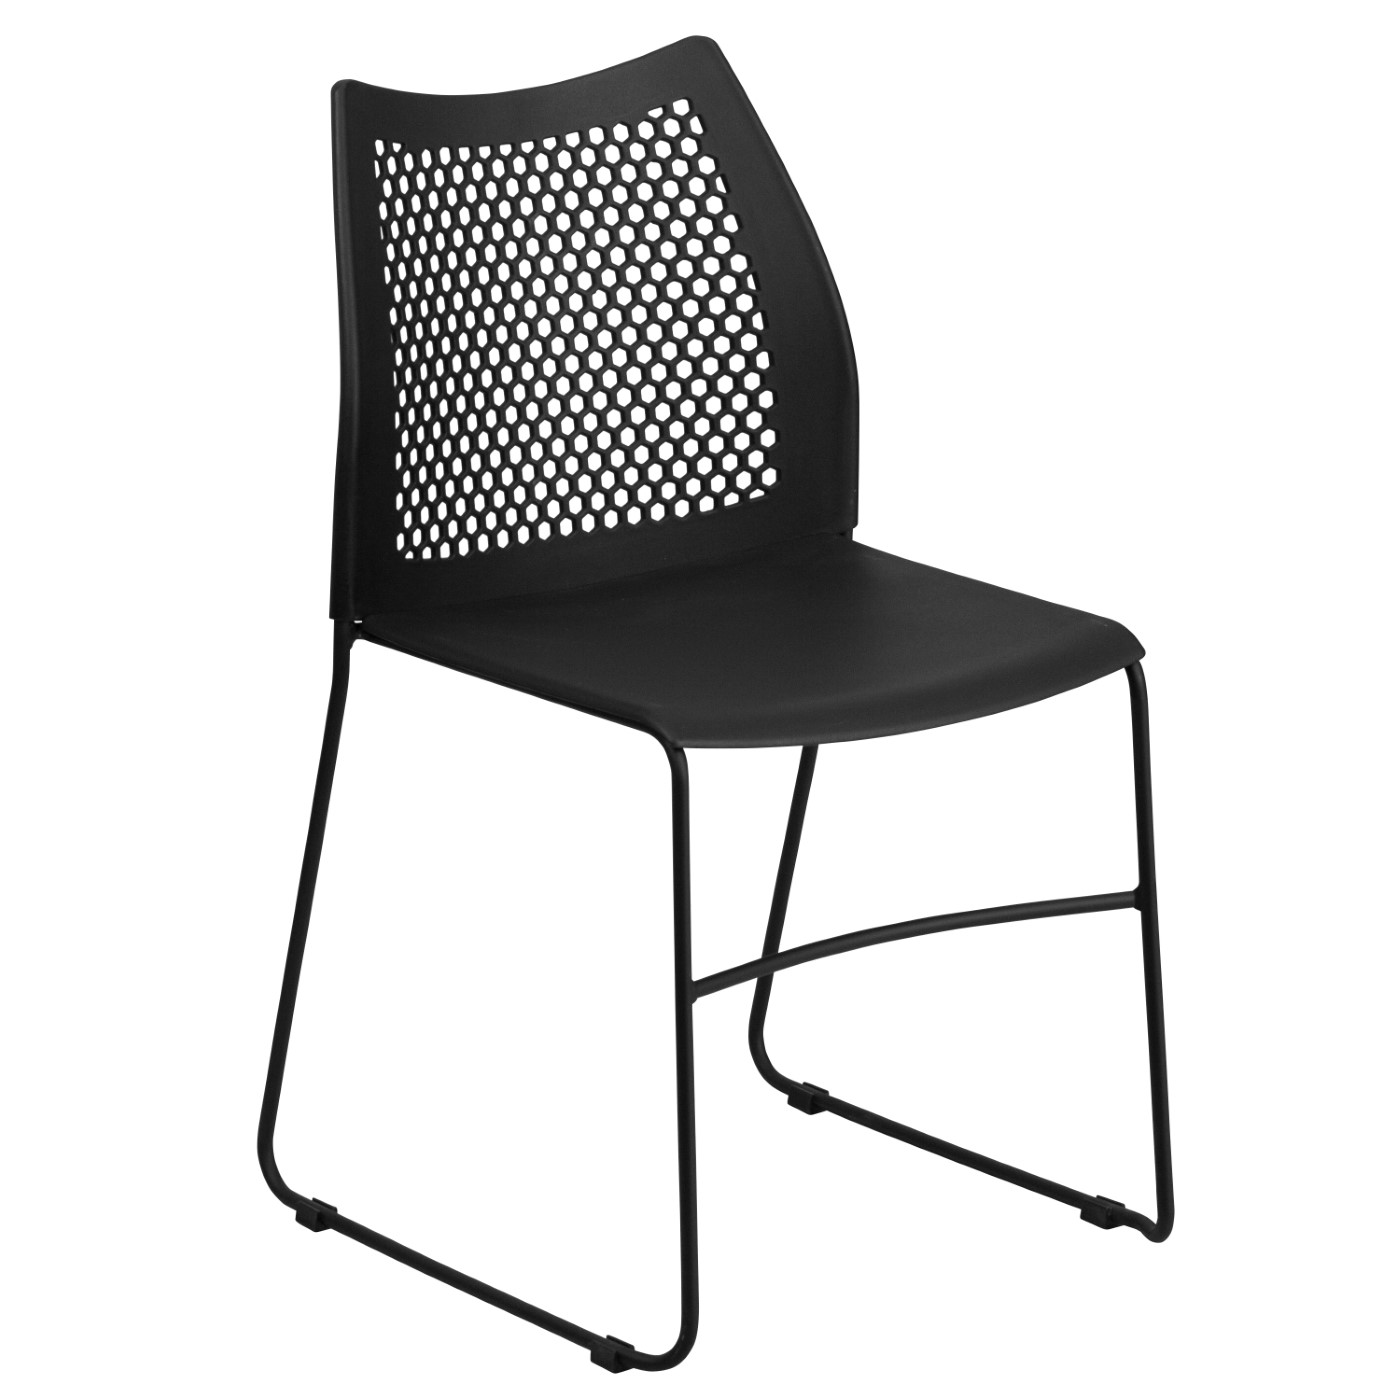 TOUGH ENOUGH Series 661 lb. Capacity Black Stack Chair with Air-Vent Back and Black Powder Coated Sled Base